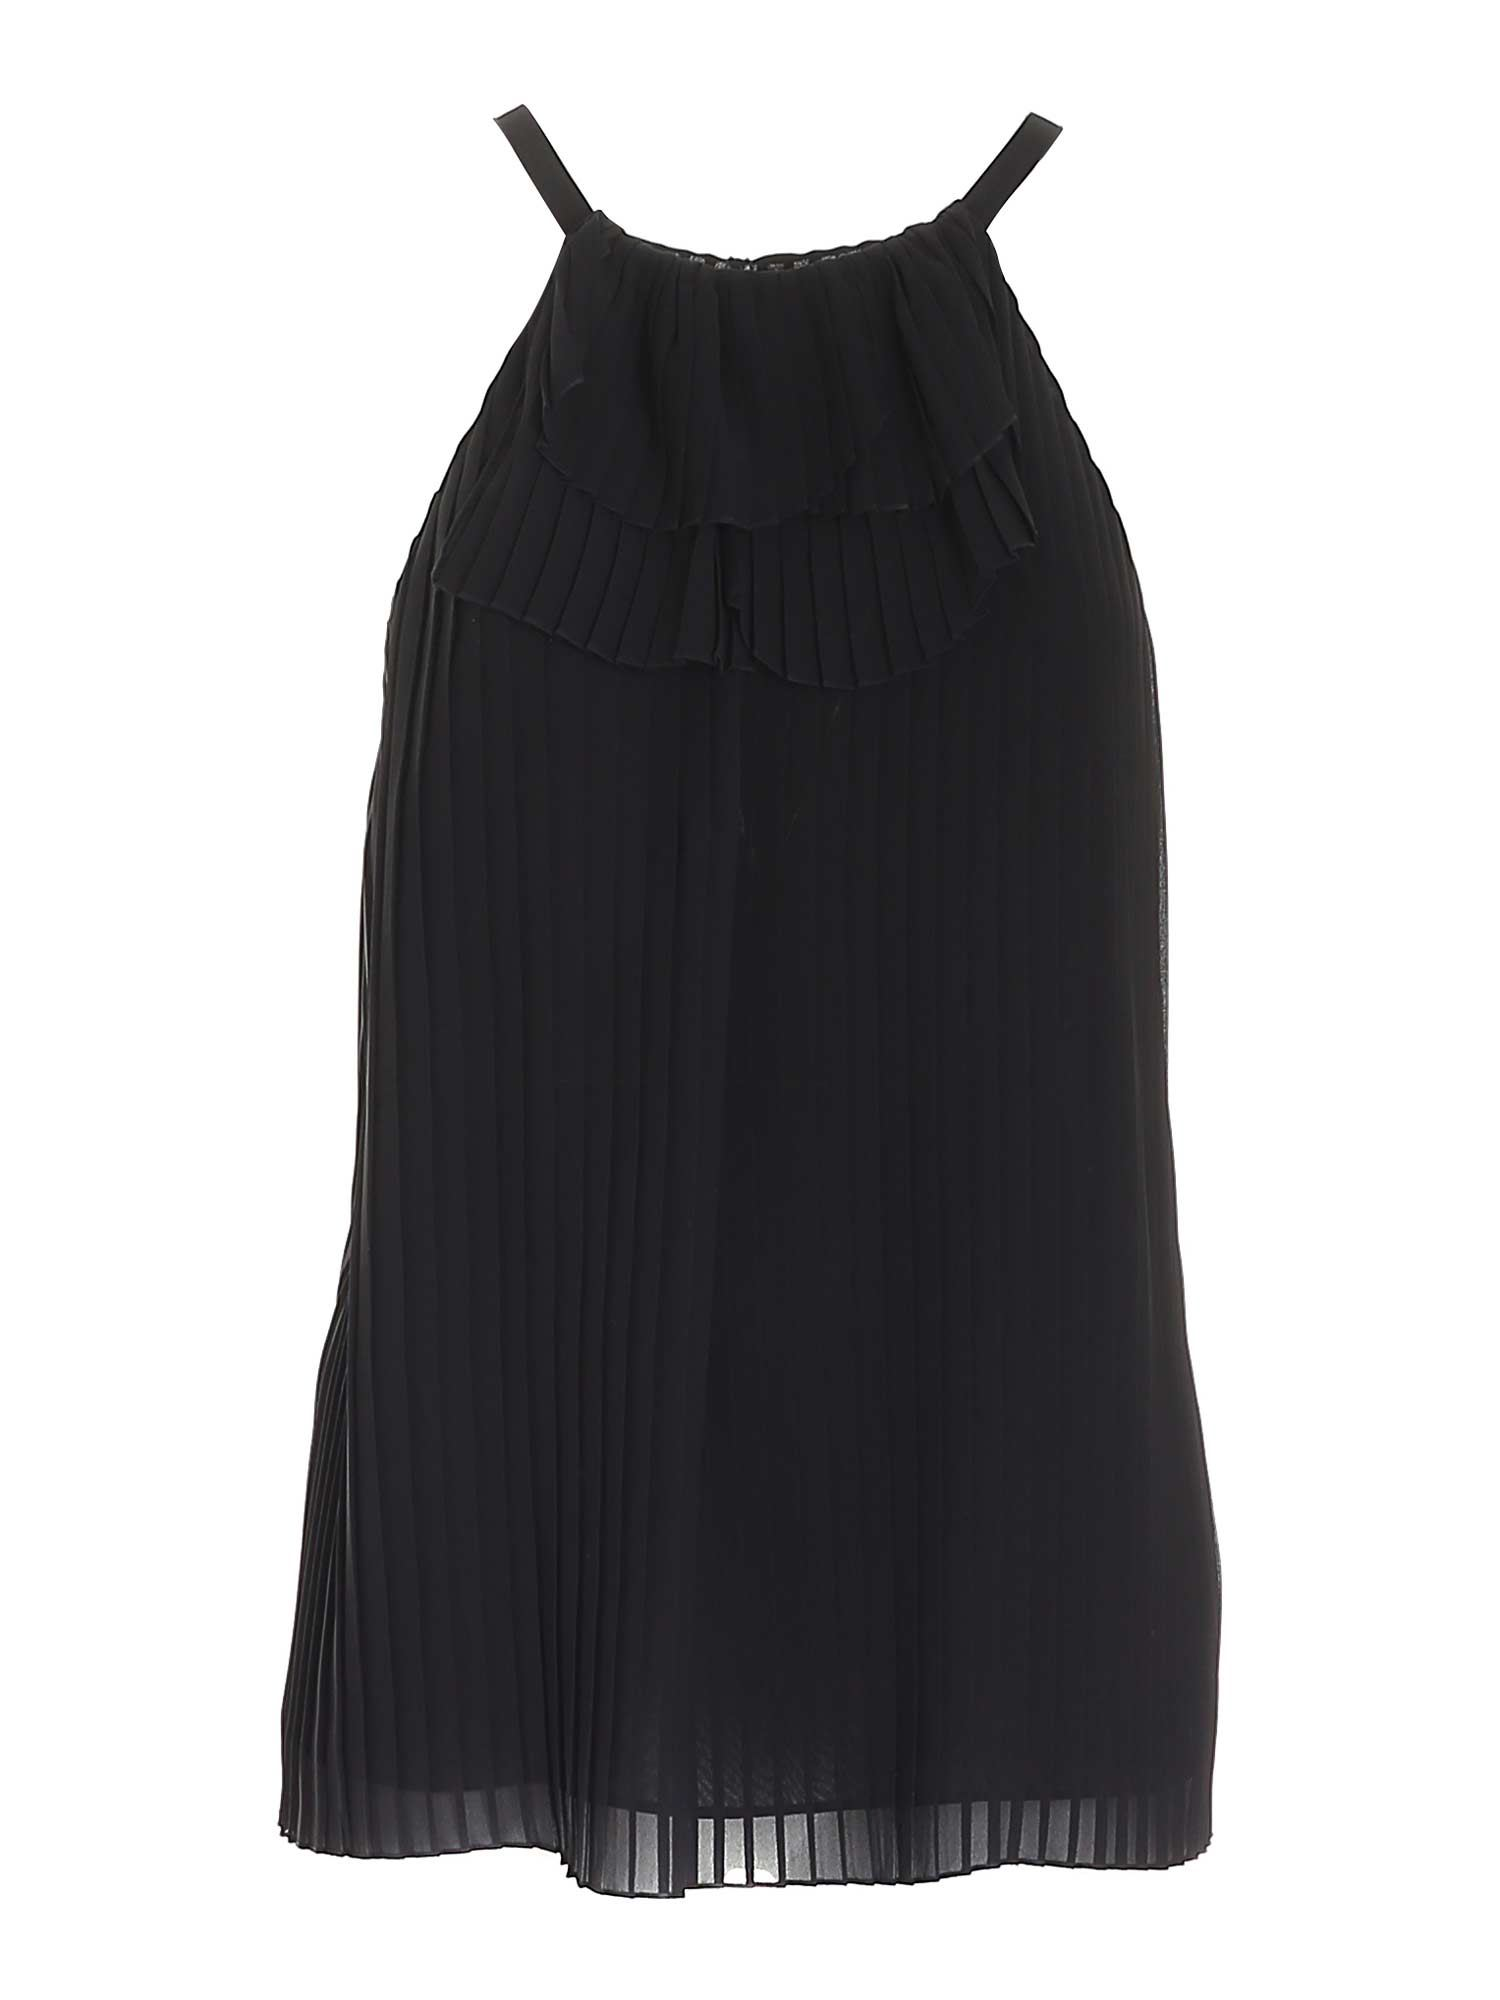 Emporio Armani Linings PLEATED TOP IN BLACK